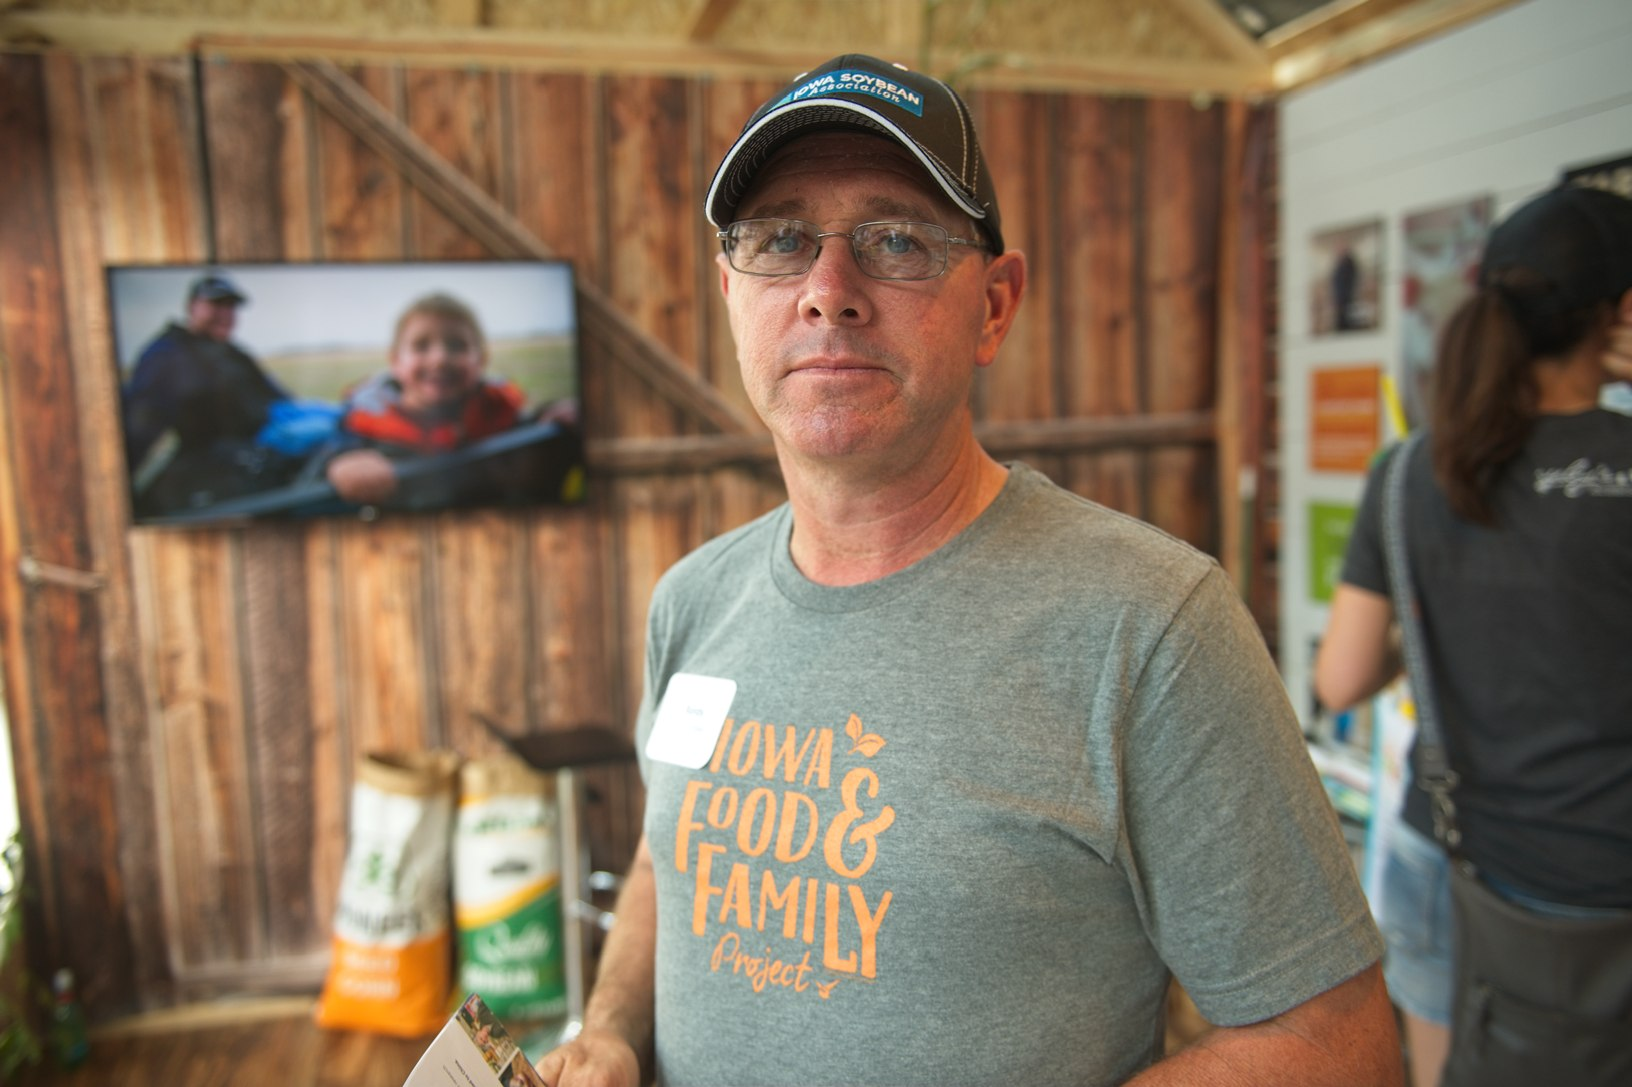 Randy Miller, a farmer from Lacona, welcomed visitors into the display to 'Follow a Farmer' and learn about Iowa agriculture. Photo credit: Joseph L. Murphy/Iowa Soybean Association